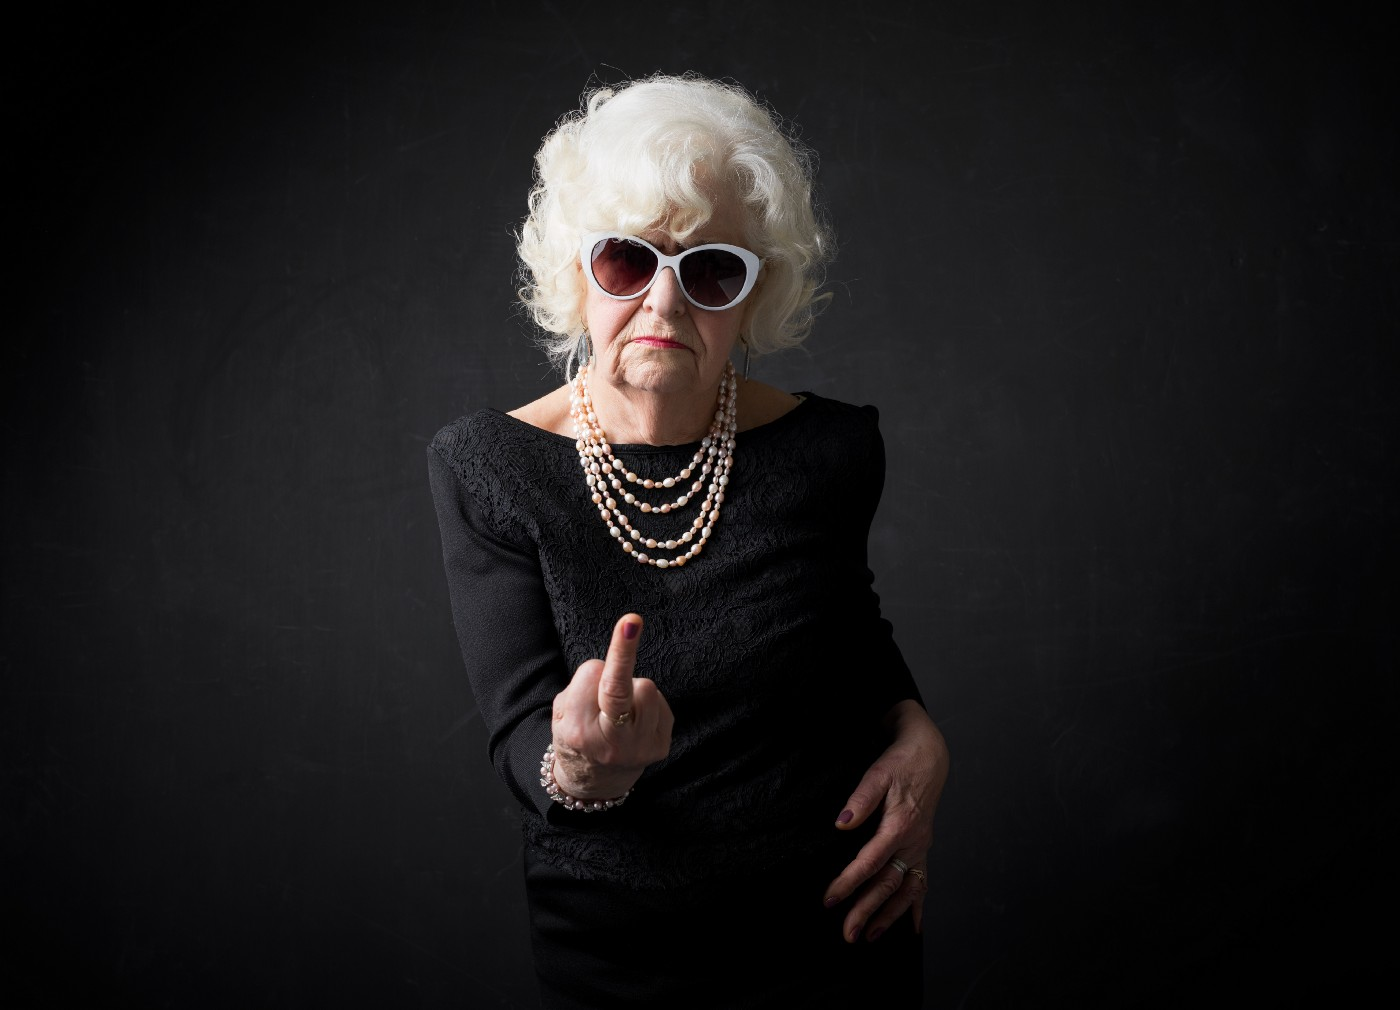 A wealthy elderly woman wearing pearls and sun glasses looks straight into the camera and gives the finger.